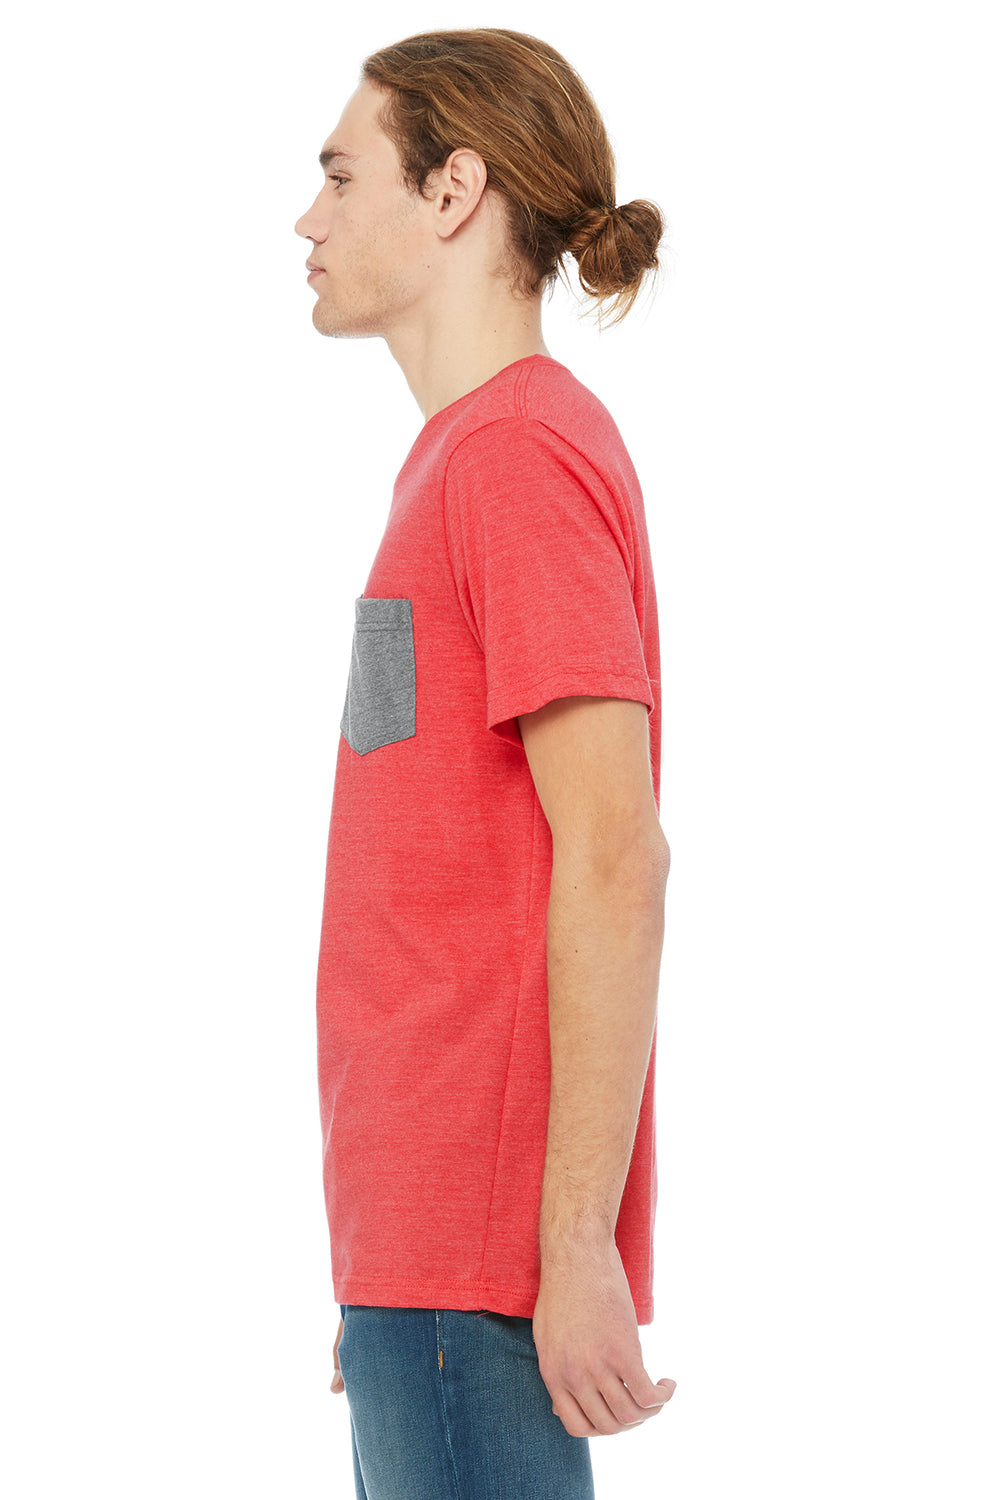 Bella + Canvas 3021 Mens Jersey Short Sleeve Crewneck T-Shirt w/ Pocket Heather Red/Heather Grey Side